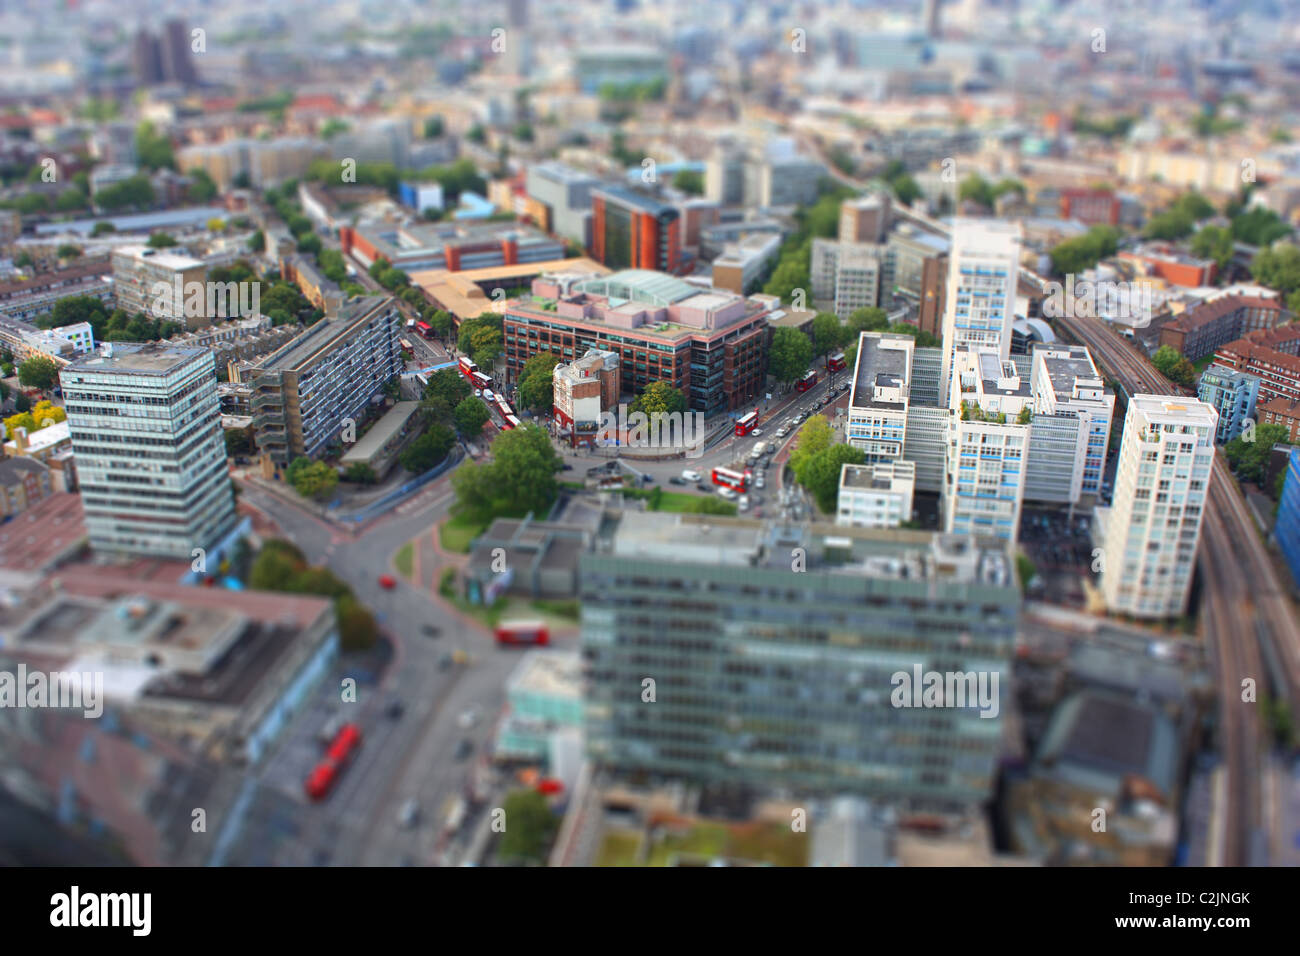 fake tilt-shift image of the Elephant and Castle in London from the top of Strata SE1 - Stock Image